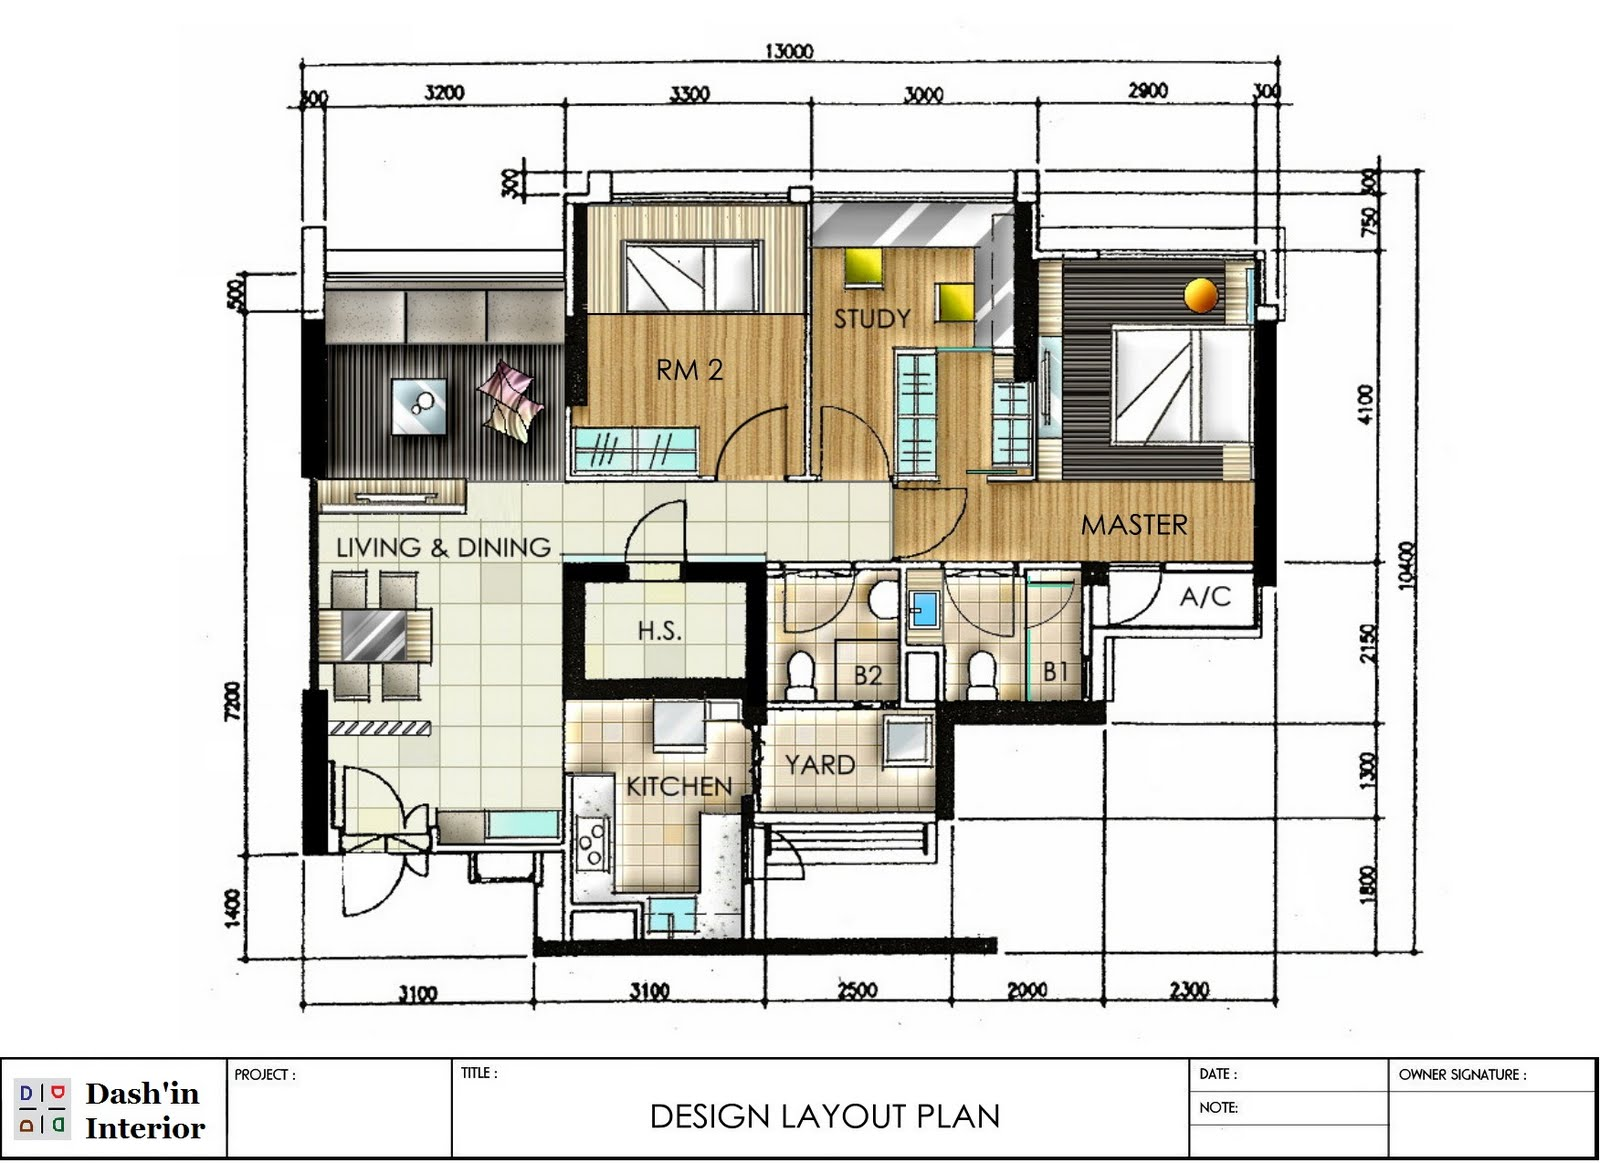 Dash 39 in interior hand drawn designs floor plan layout Planning a house